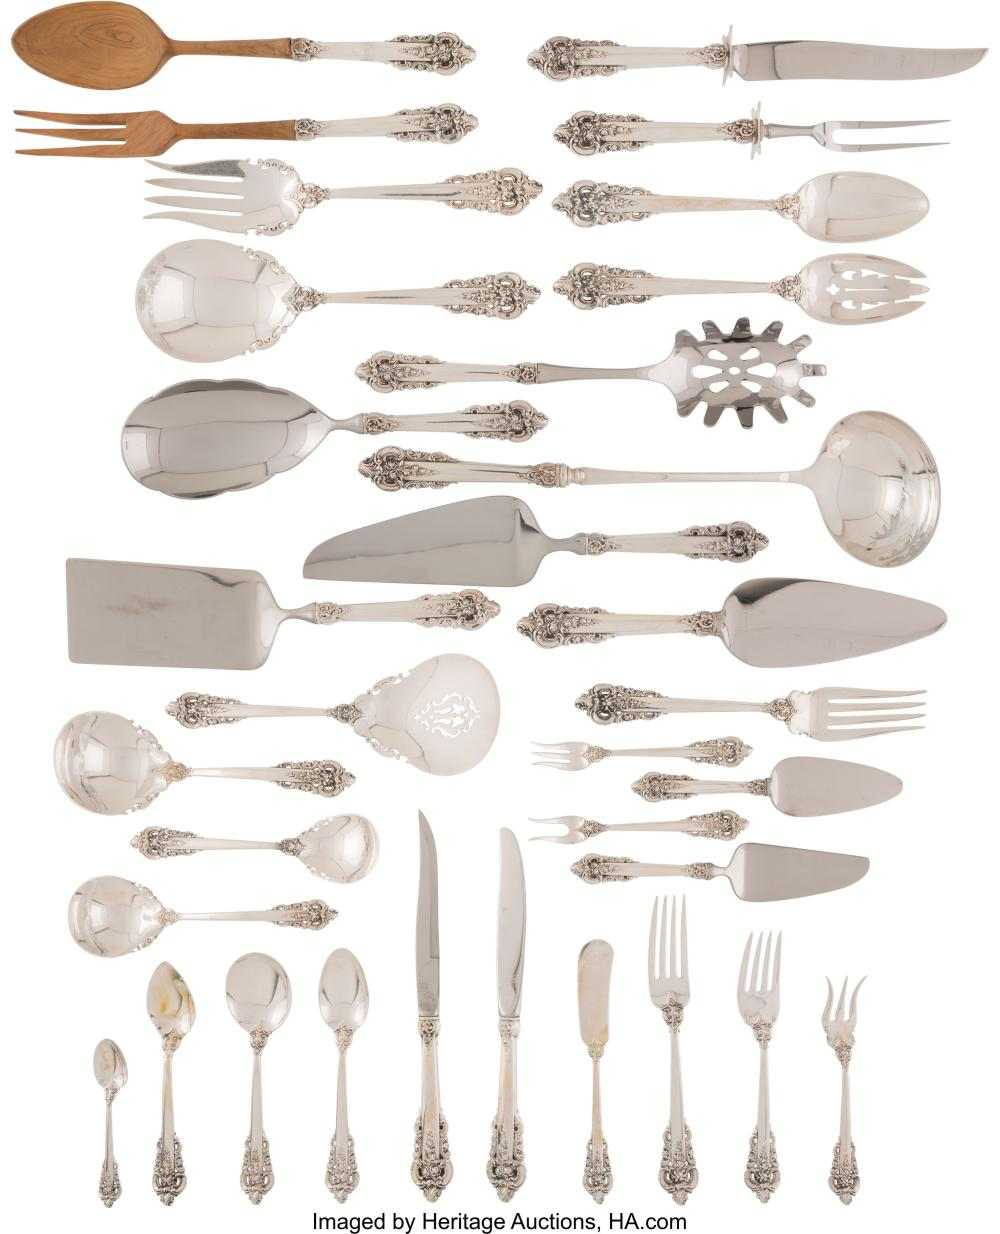 A One Hundred and Fifty-Four-Piece Wallace Grand Baroque Pattern Silver Flatware